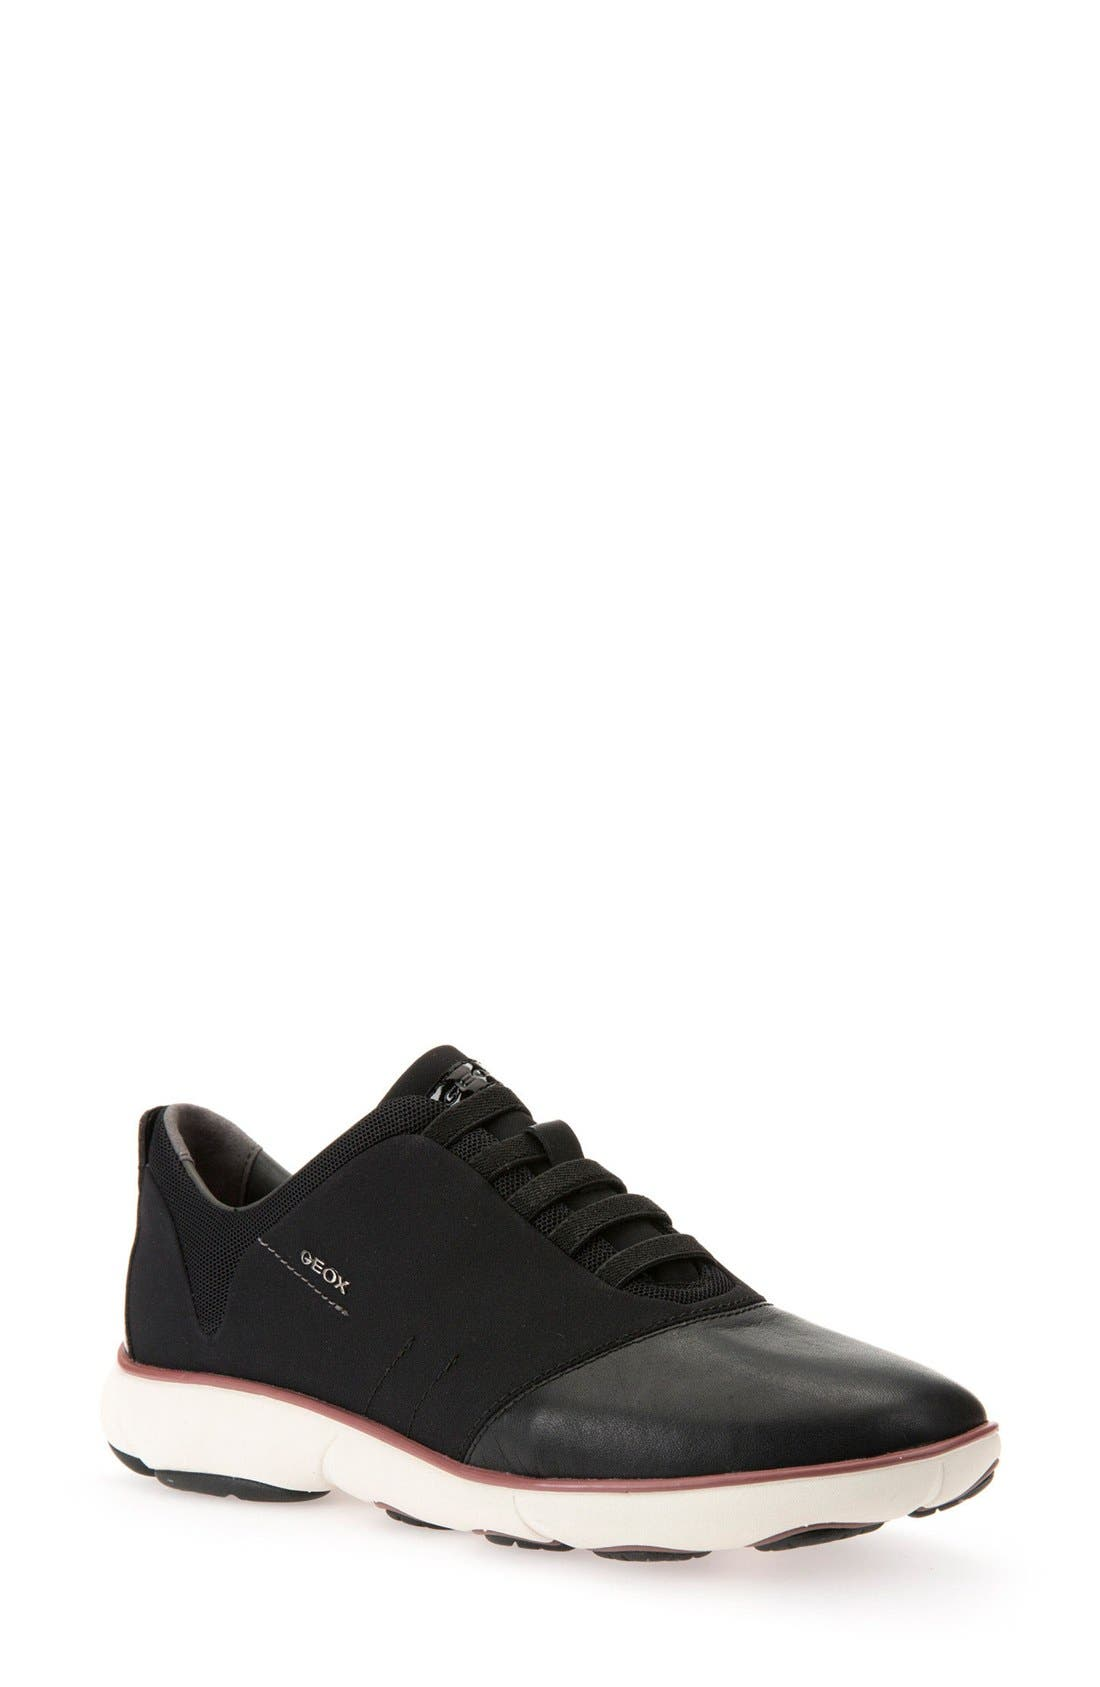 'Nebula' Sneaker,                         Main,                         color, Black Leather